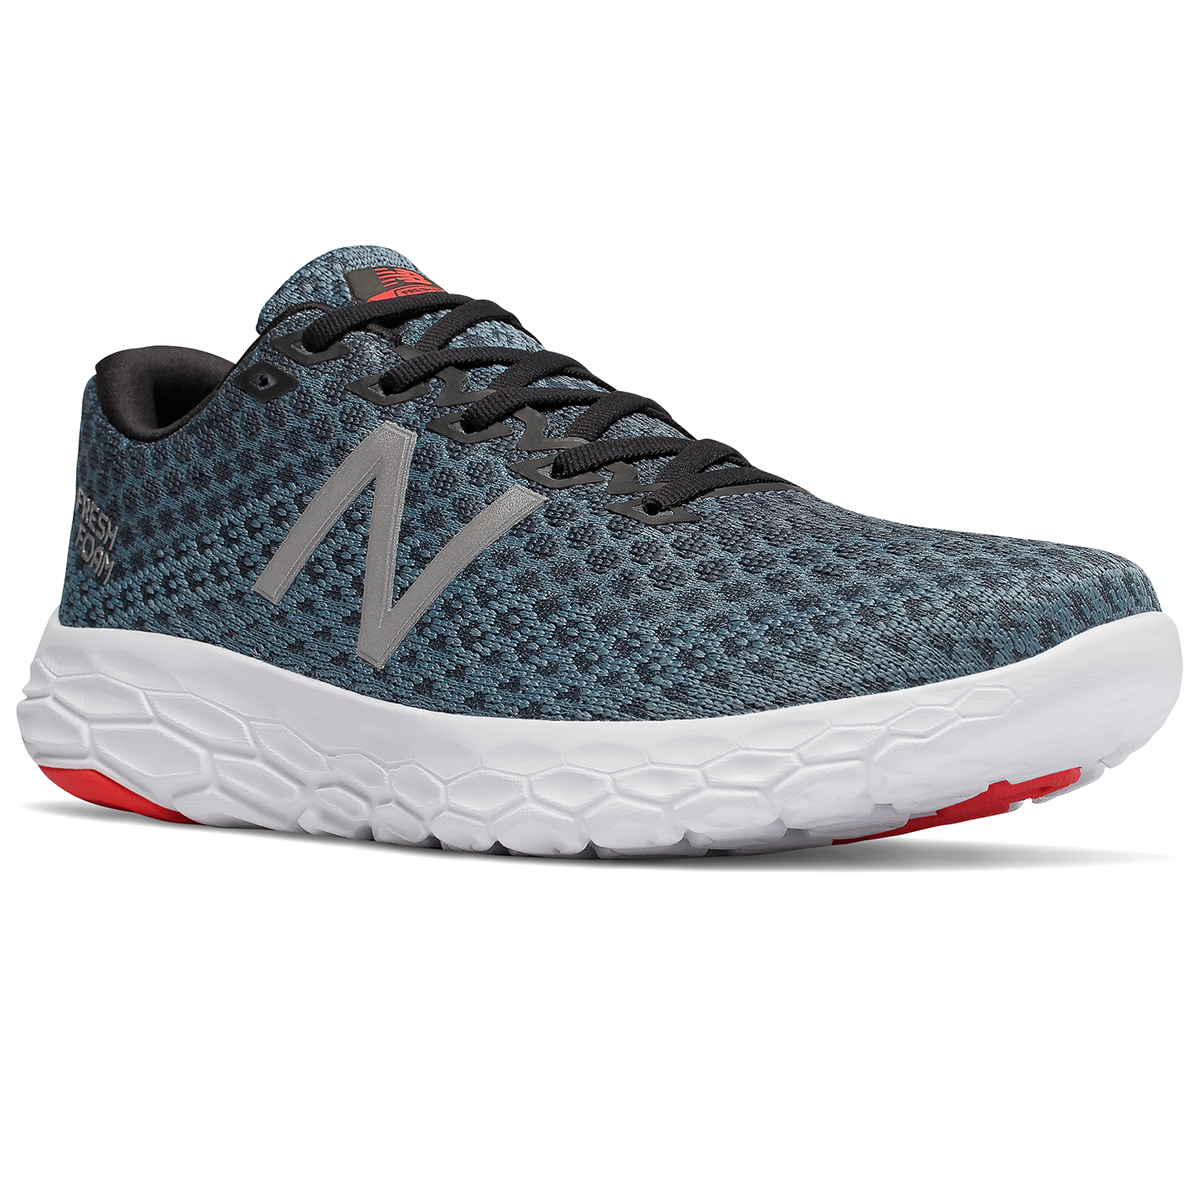 New Balance Men's Fresh Foam Beacon Running Shoes - Black, 11